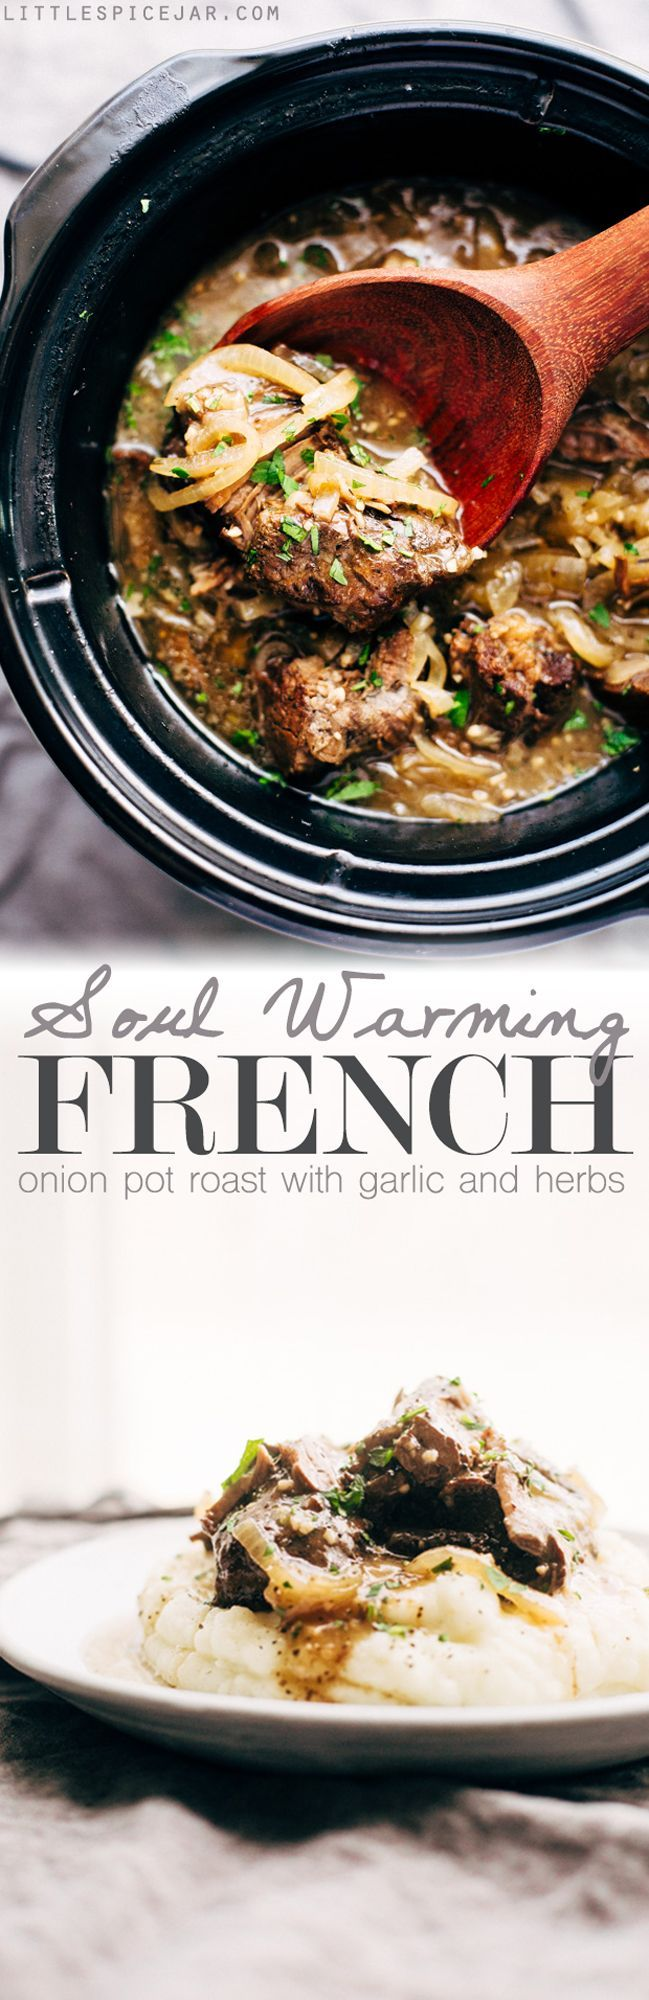 Warming French Onion Pot Roast Soul Warming French Onion Pot Roast - A simple pot roast that combines french onion soup with pot roast! Make it in the slow cooker on in the oven! | Soul Warming French Onion Pot Roast - A simple pot roast that combines french onion soup with pot roast! Make it in the slow cooker on in the oven! |